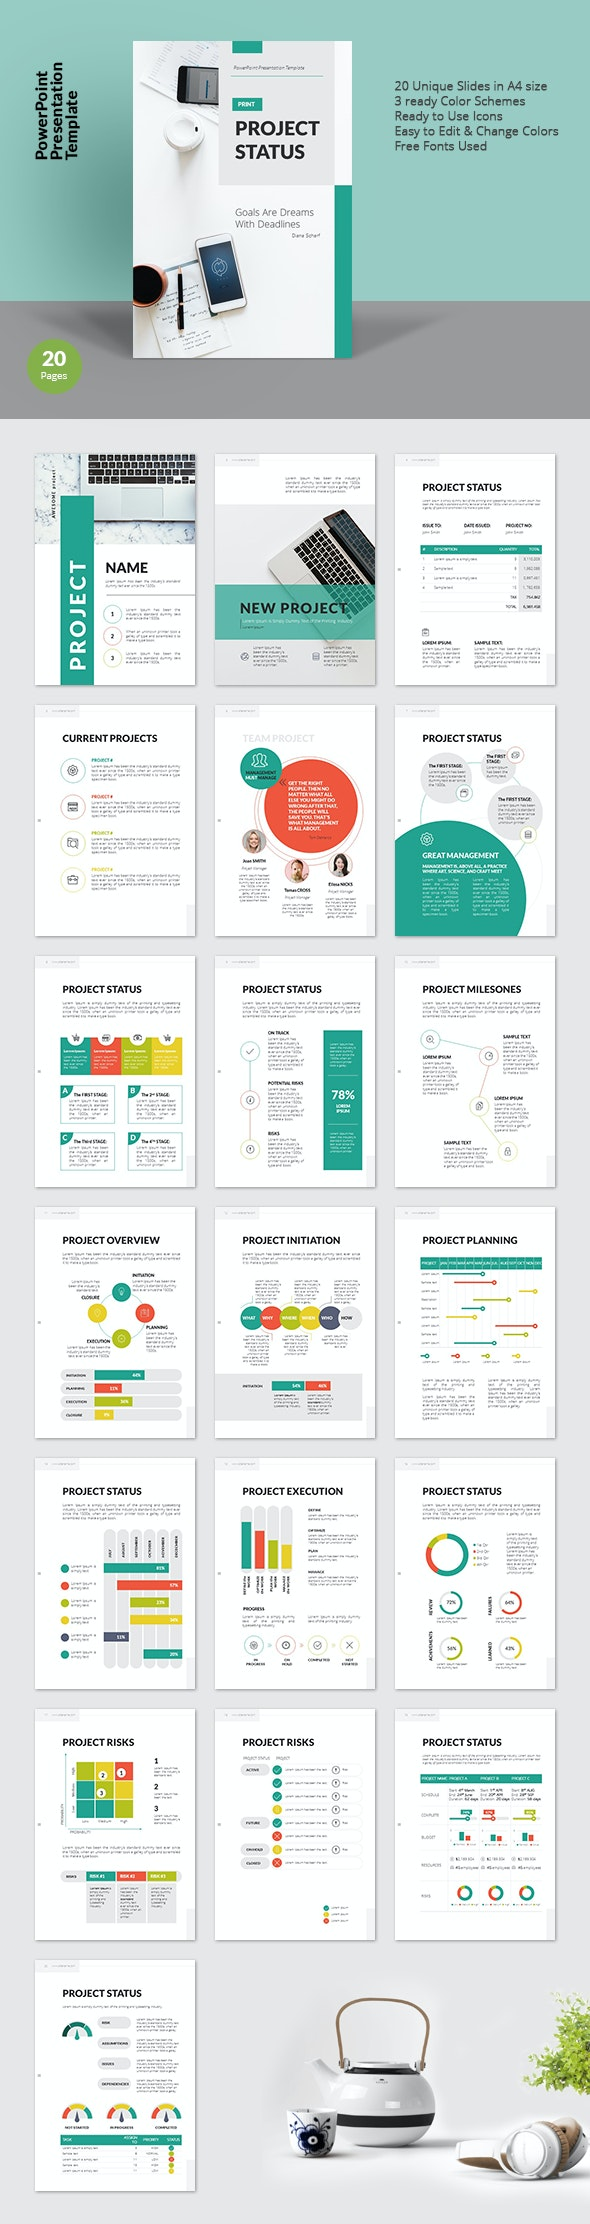 A4 Project Status PowerPoint Presentation Template for Print - PowerPoint Templates Presentation Templates